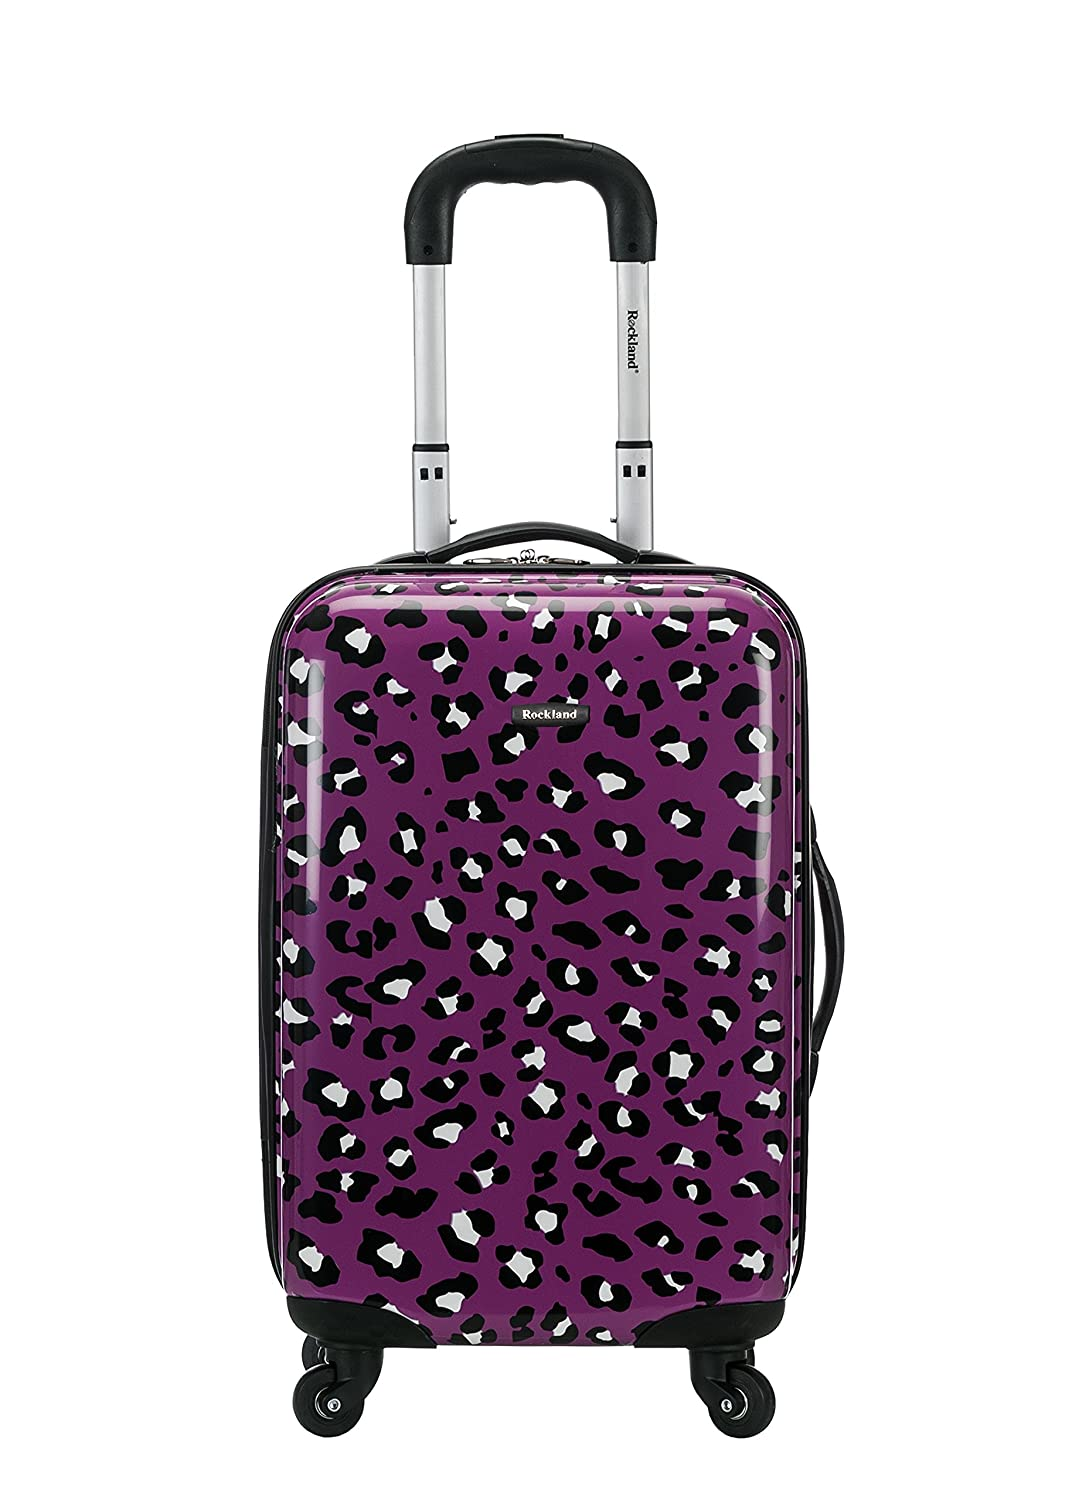 Rockland F191 Luggage Carry On Skin, Pink Zebra, Medium, 20-Inch F191-PINKZEBRA